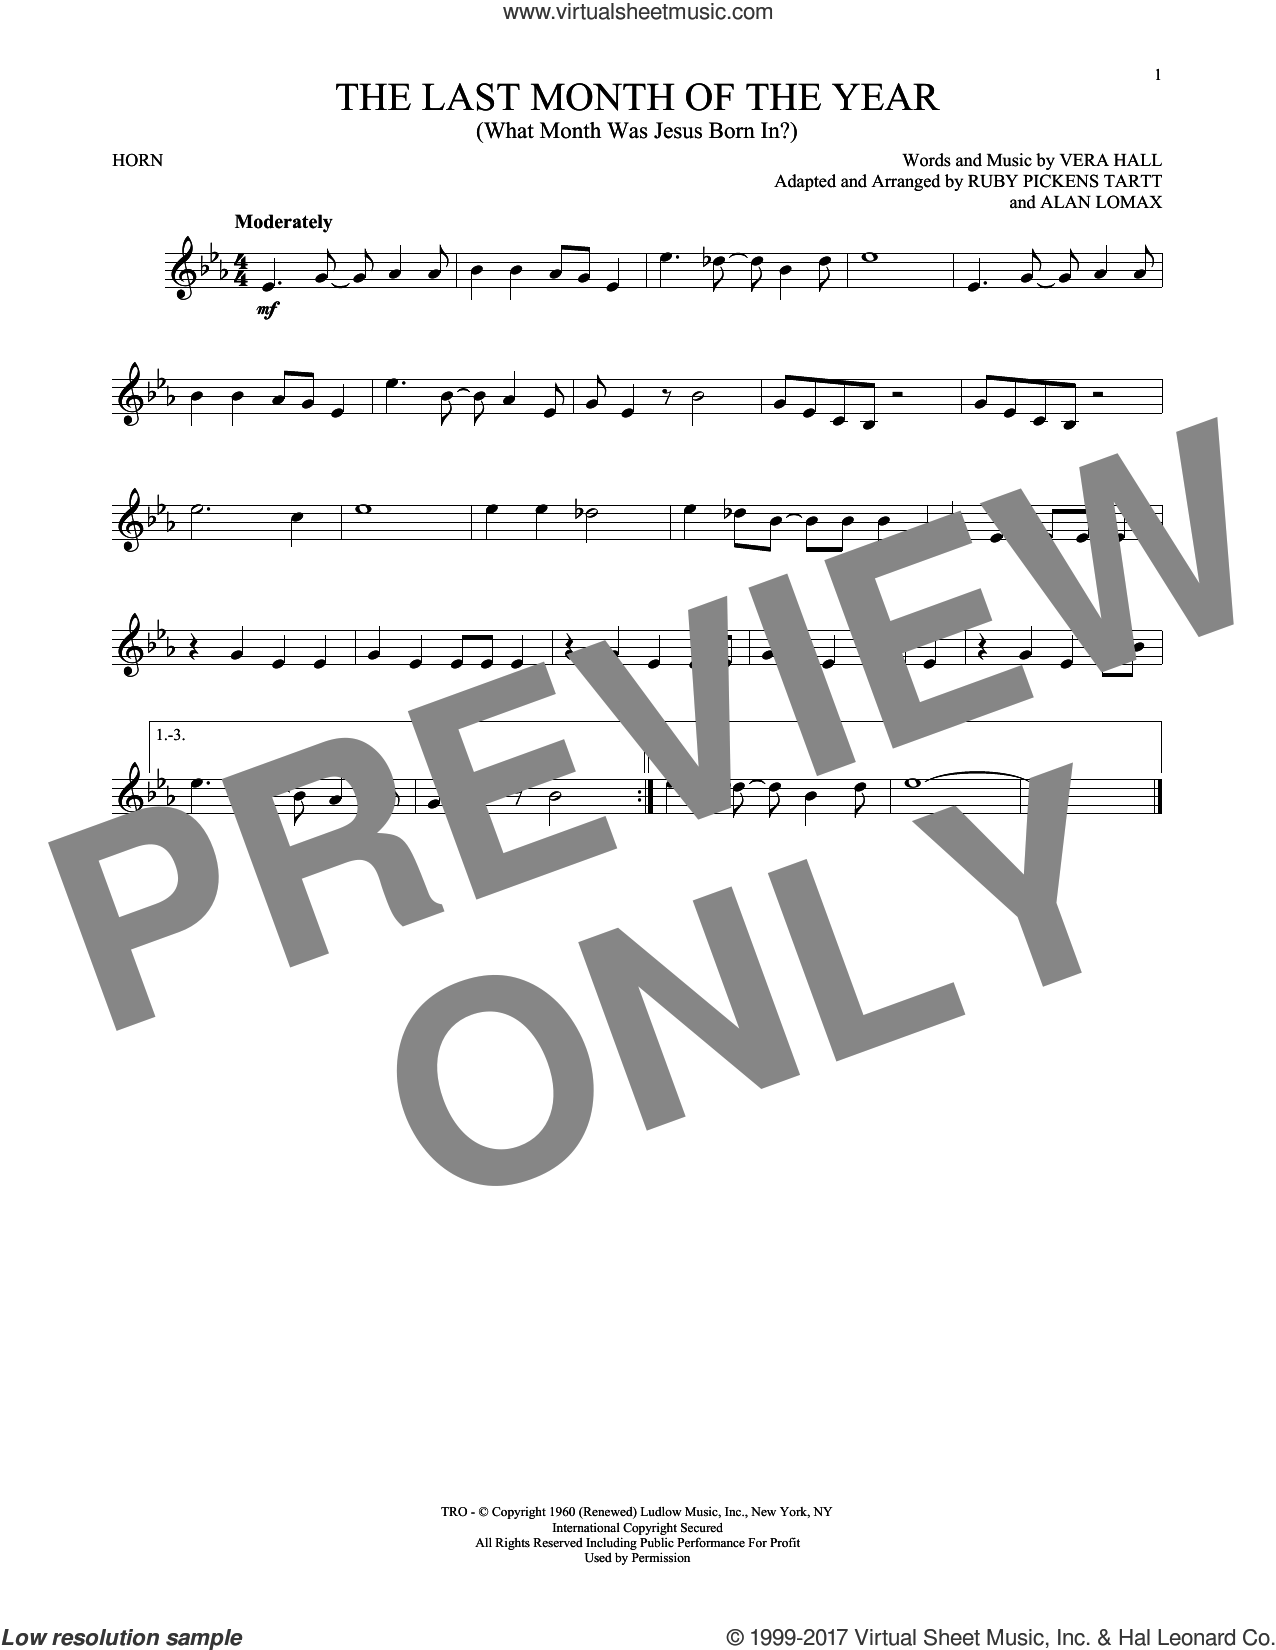 The Last Month Of The Year (What Month Was Jesus Born In?) sheet music for horn solo by Ruby Pickens Tartt, John A. Lomax and Vera Hall, intermediate skill level